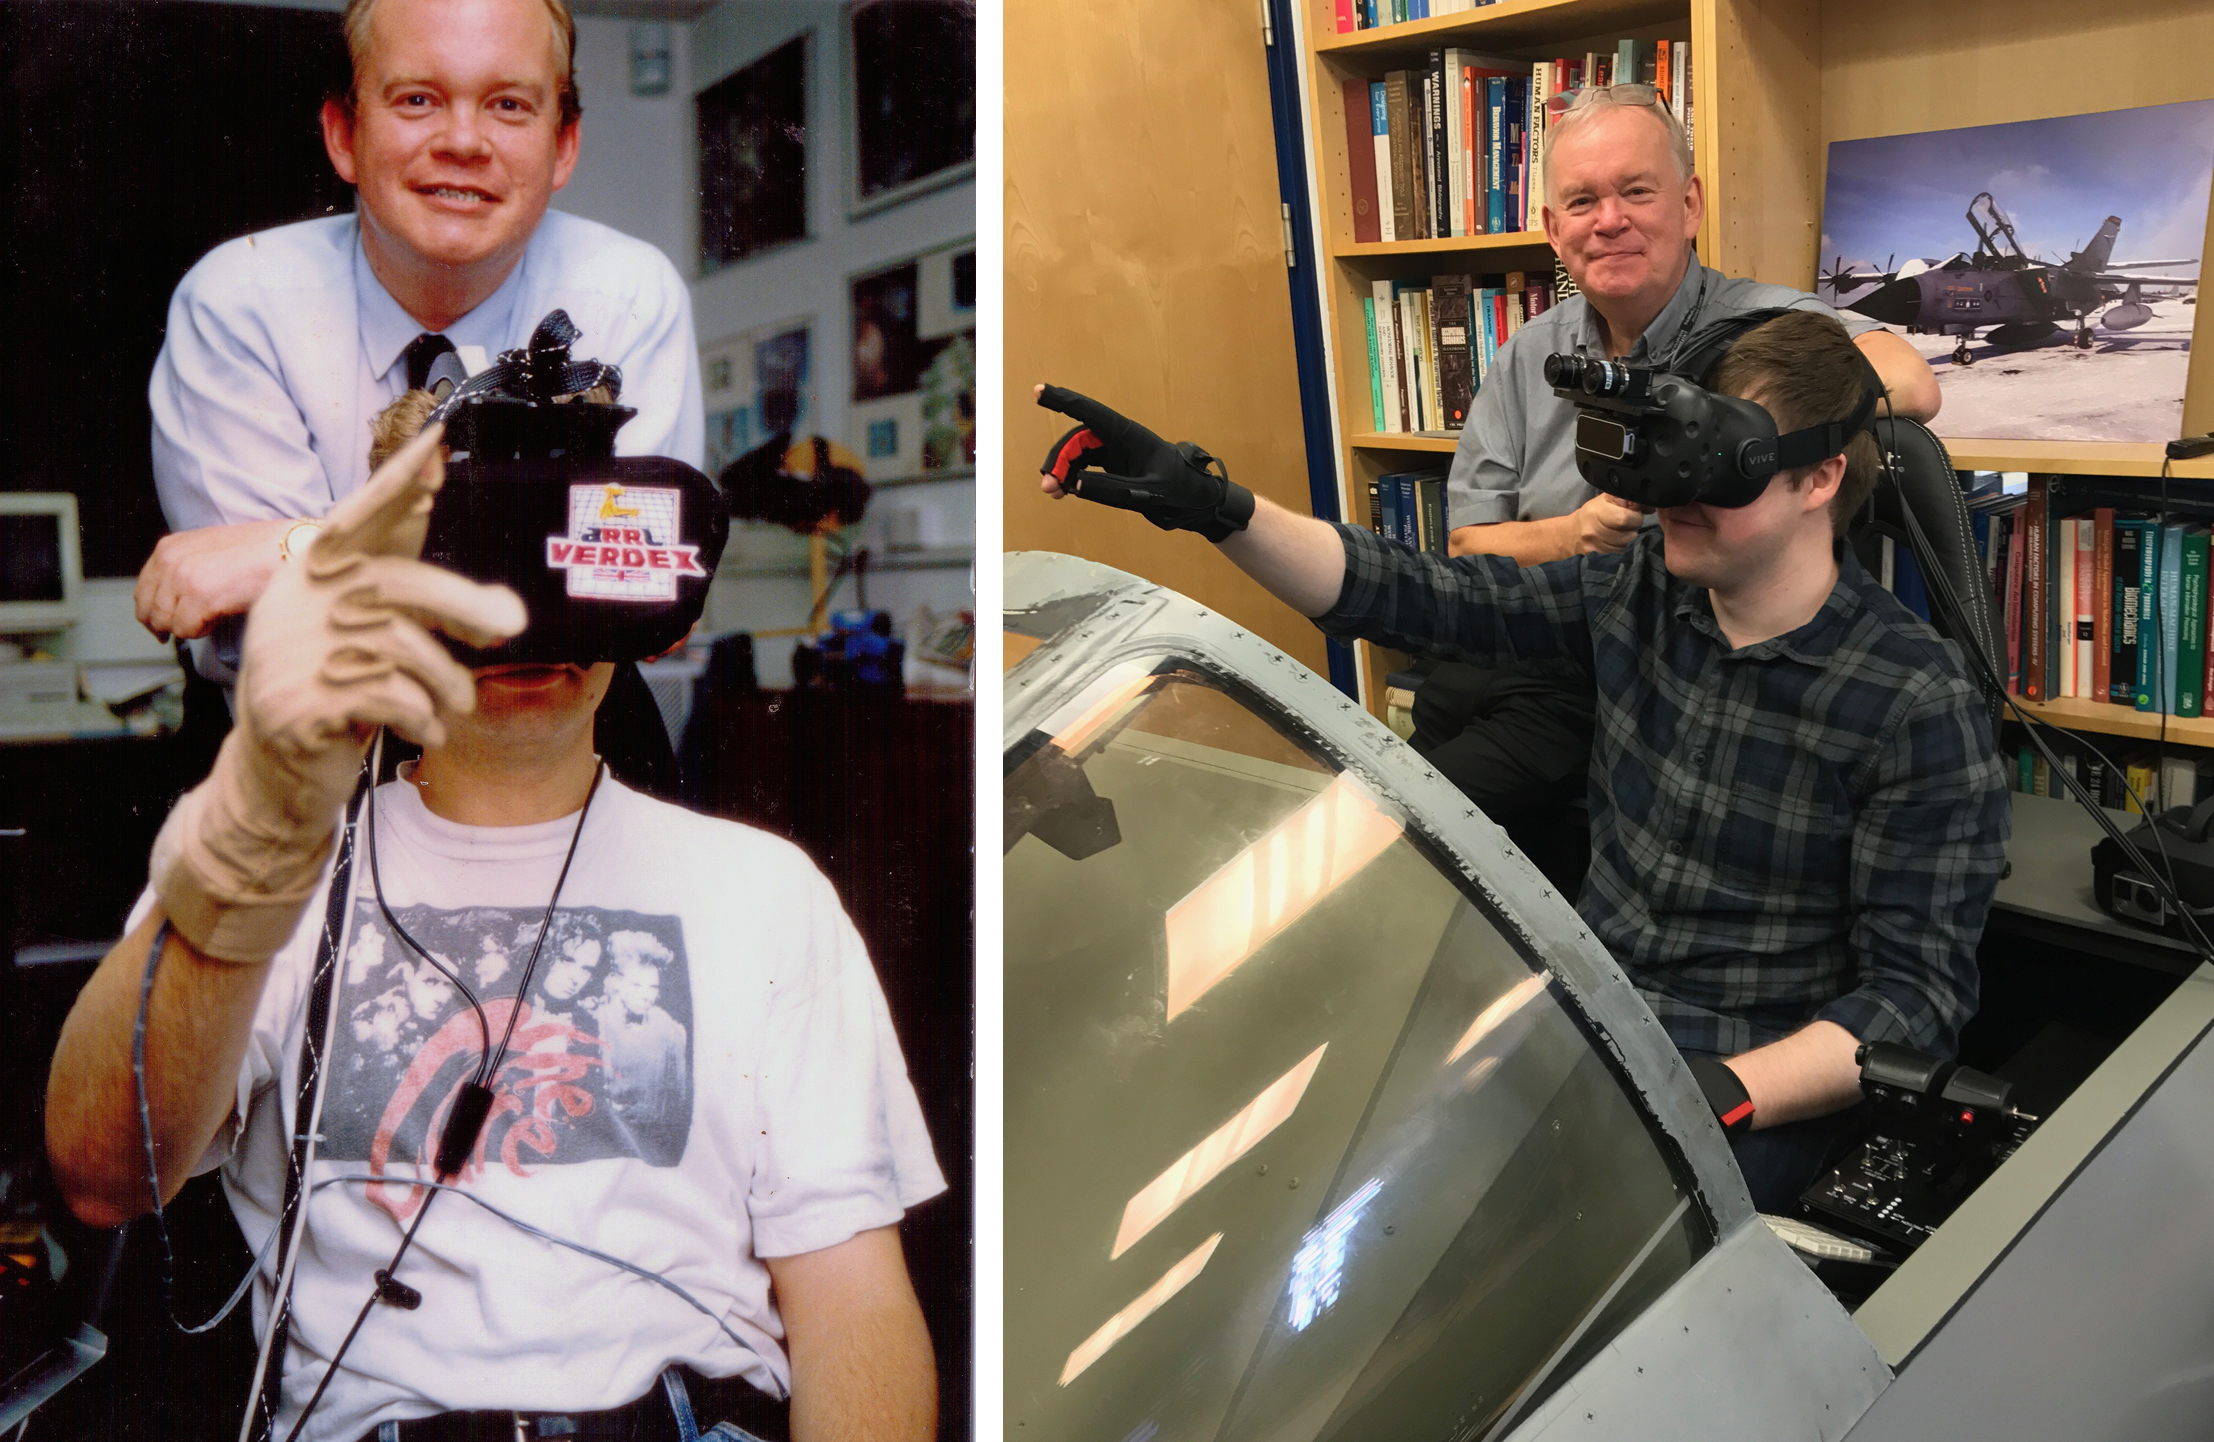 Two photos of Professor Bob Stone anda person using virtual reality technology. On the left is a photo of Bob from the 1990s, on the right is a recent photo of Bob.